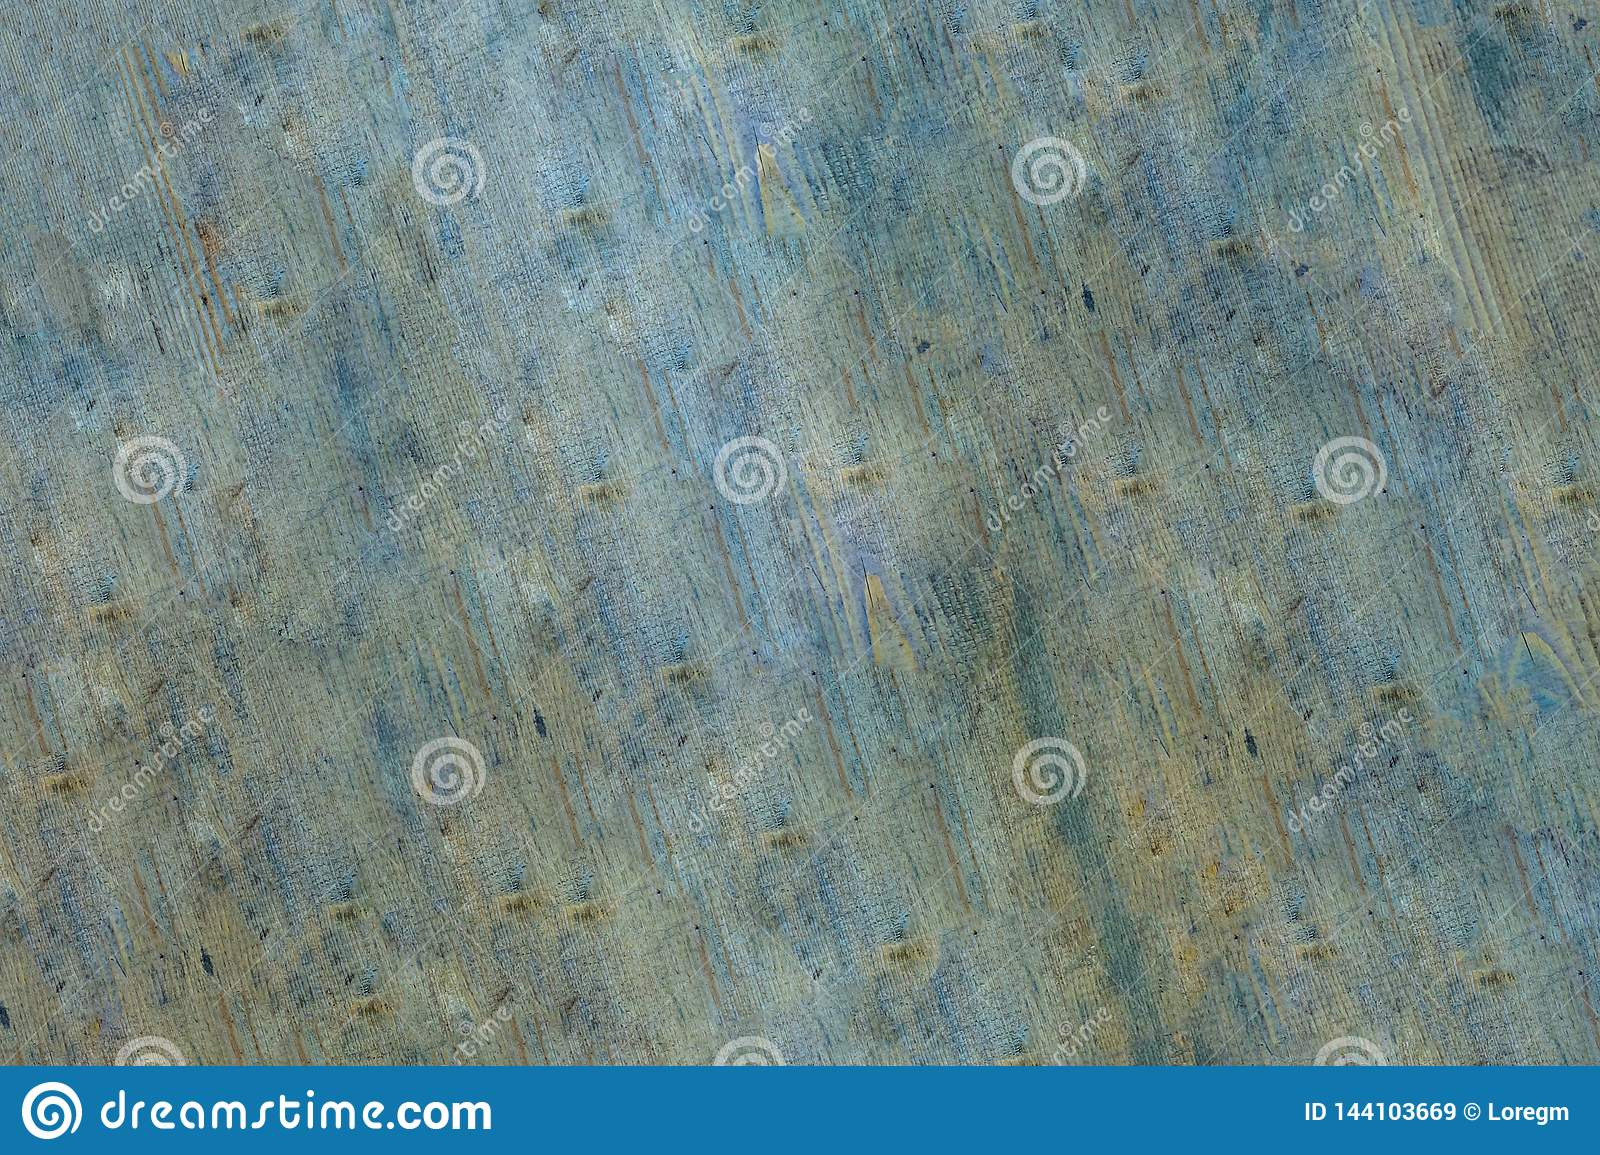 Wooden texture green gray eco base design rustic hard background clean foundation